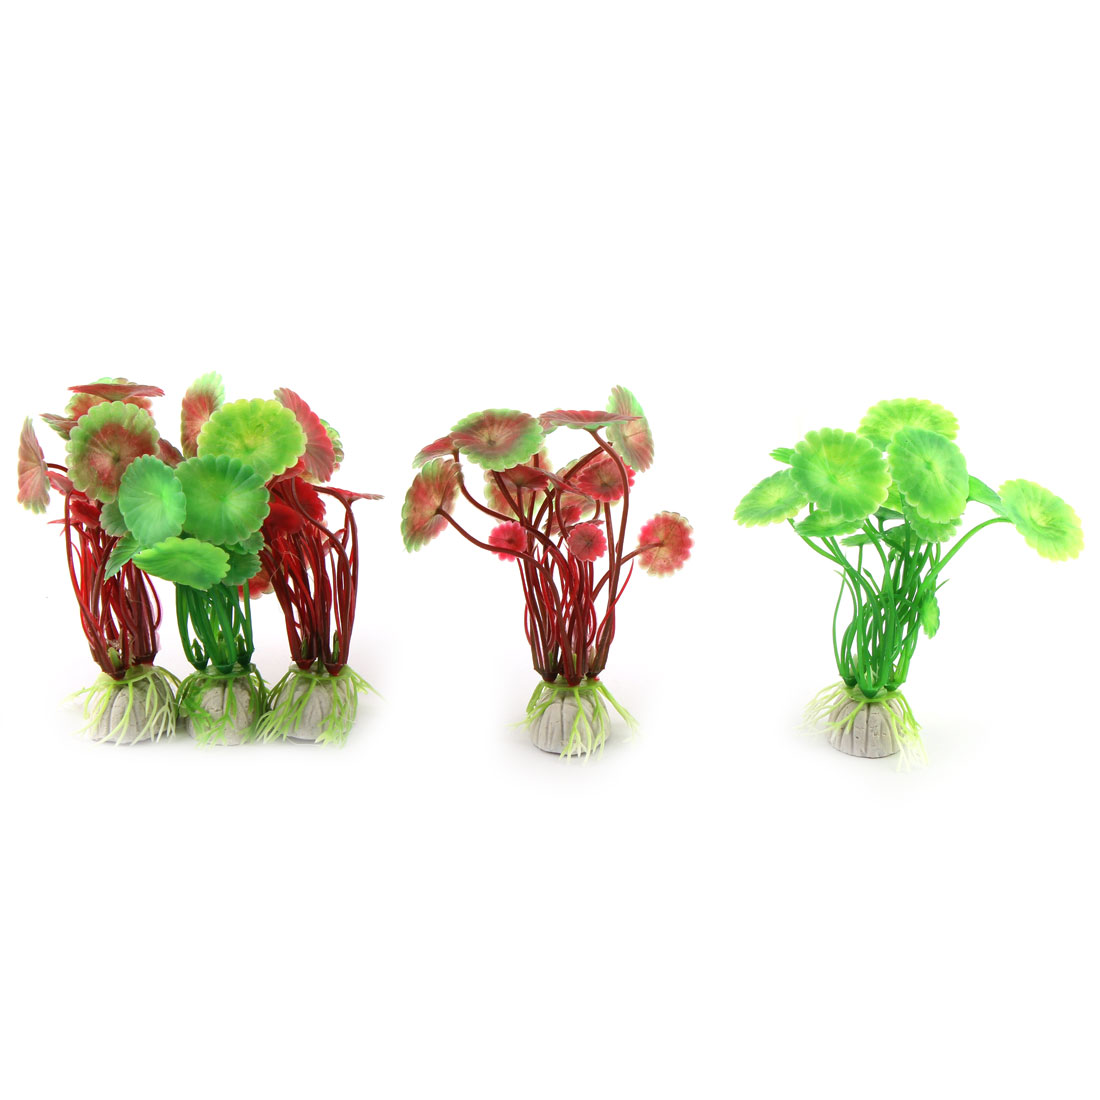 Aquarium Decor Plastic Emulational Water Plants Green Red 10cm Height 5 Pcs